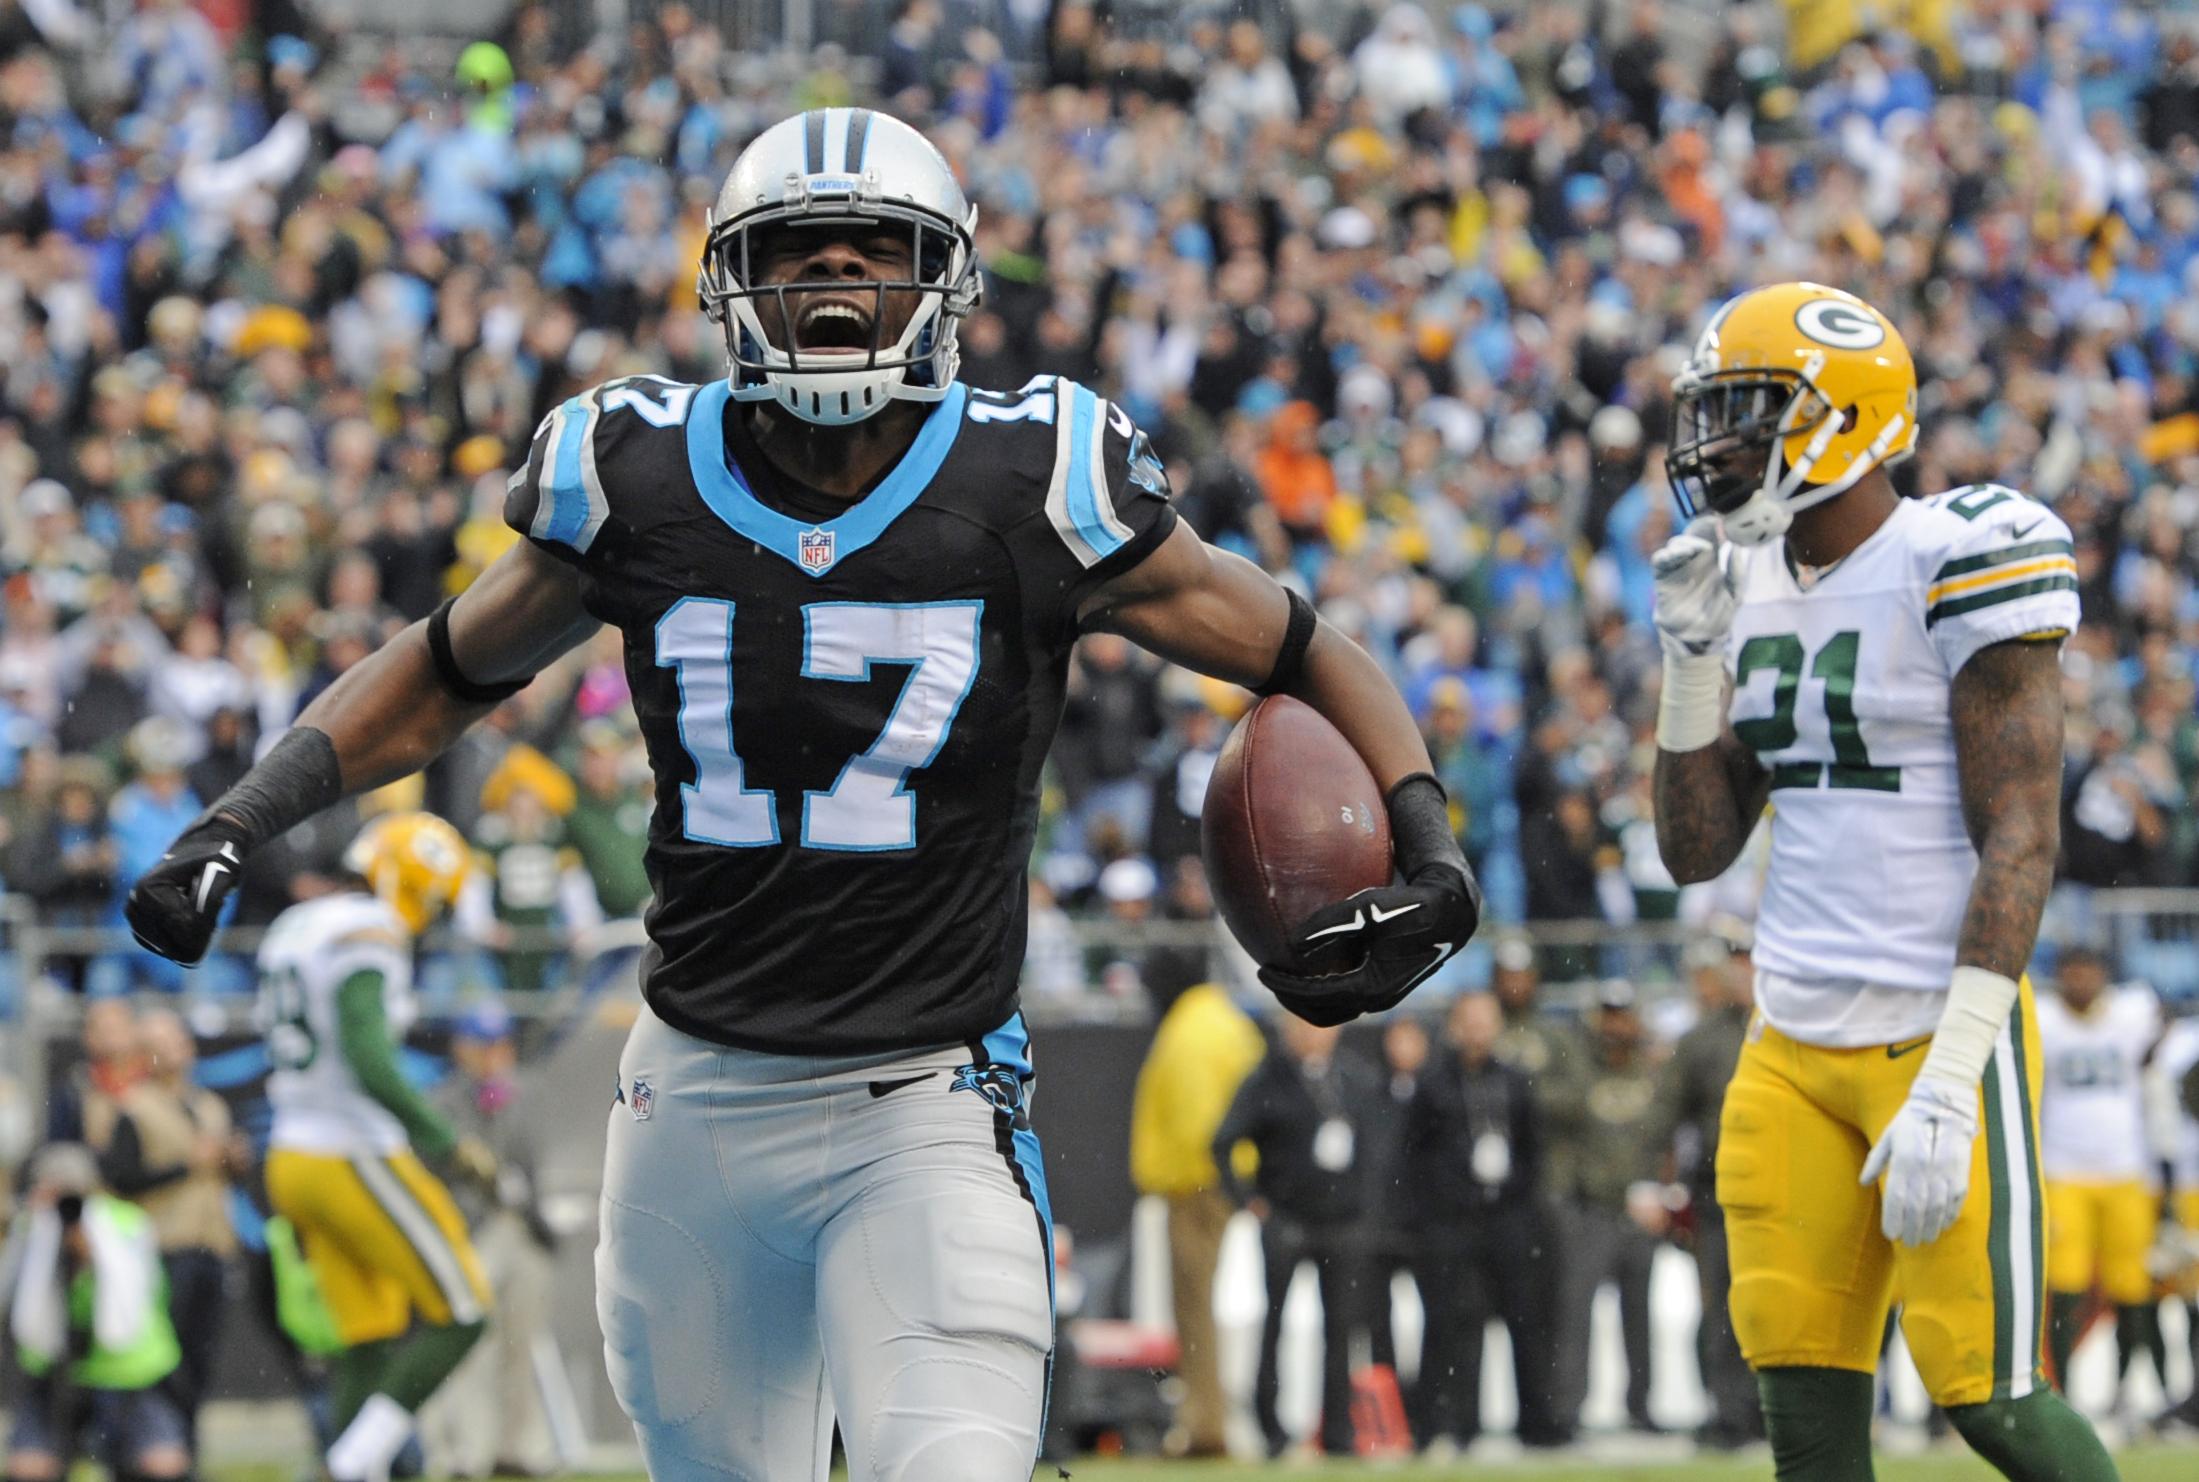 FILE - In this Nov. 8, 2015, file photo, Carolina Panthers' Devin Funchess (17) celebrates his touchdown as Green Bay Packers' Ha Ha Clinton-Dix (21) watches in the second half of an NFL football game in Charlotte, N.C. A last-second field goal keeps the